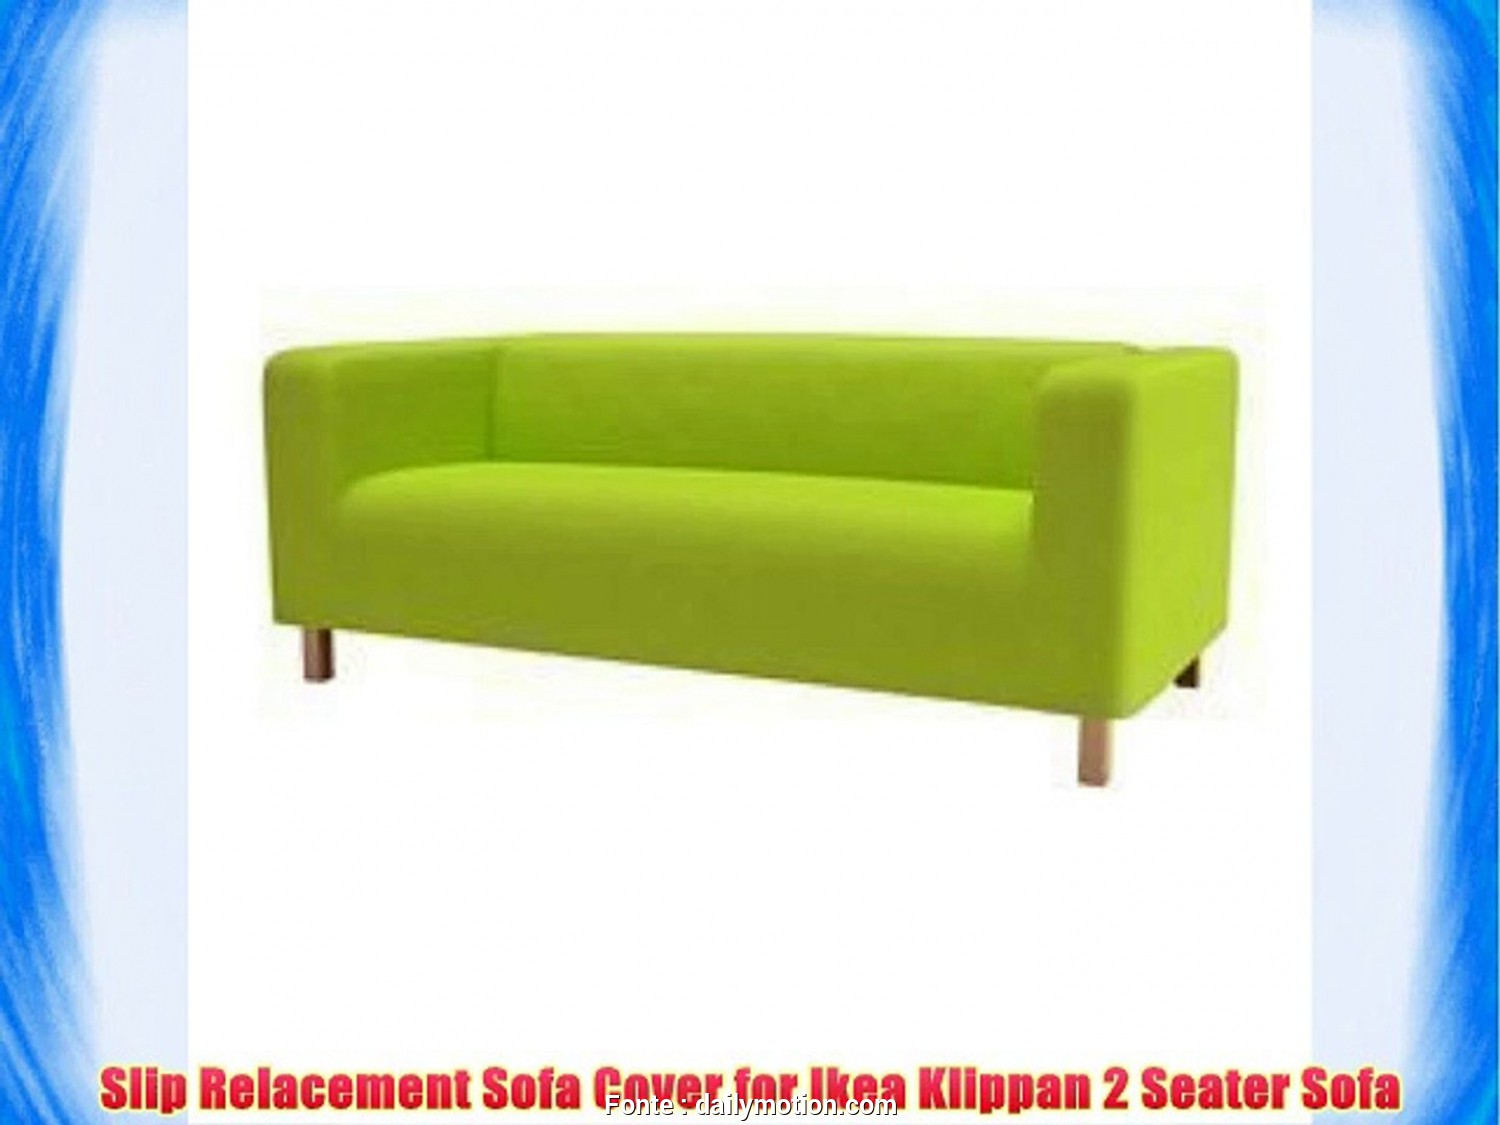 Klippan Ikea Instructions, Casuale Sofa Slip Replacement Cover, Ikea Klippan 2 Seater Sofa In Lime Green With Velcro Secure, Video Dailymotion